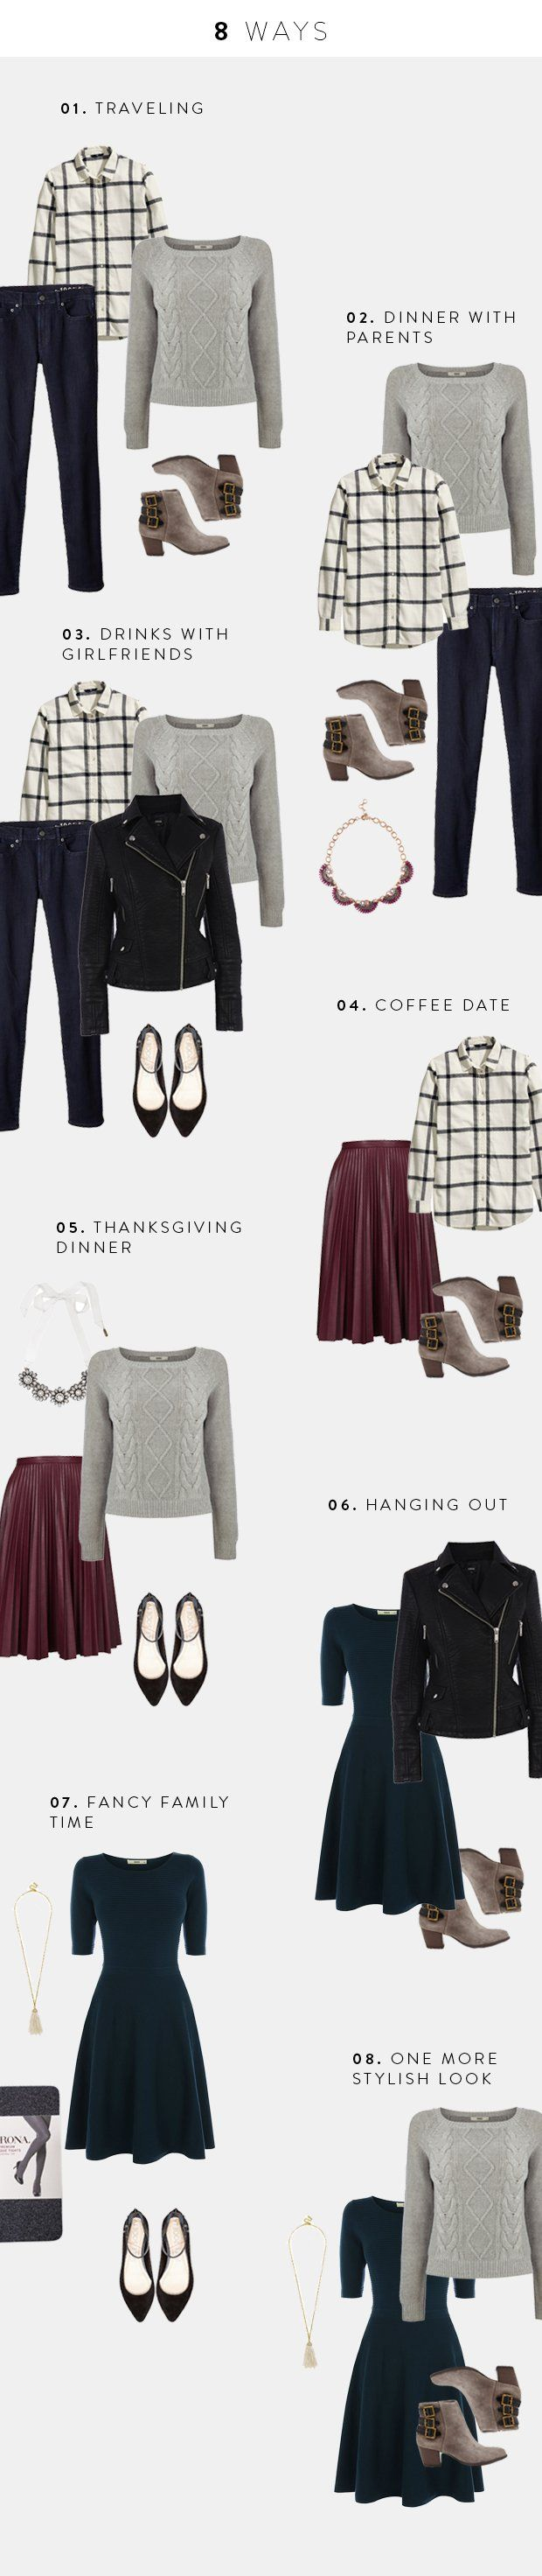 Holiday Outfits to Help You Look Great and Pack Light This Long Weekend | Verily